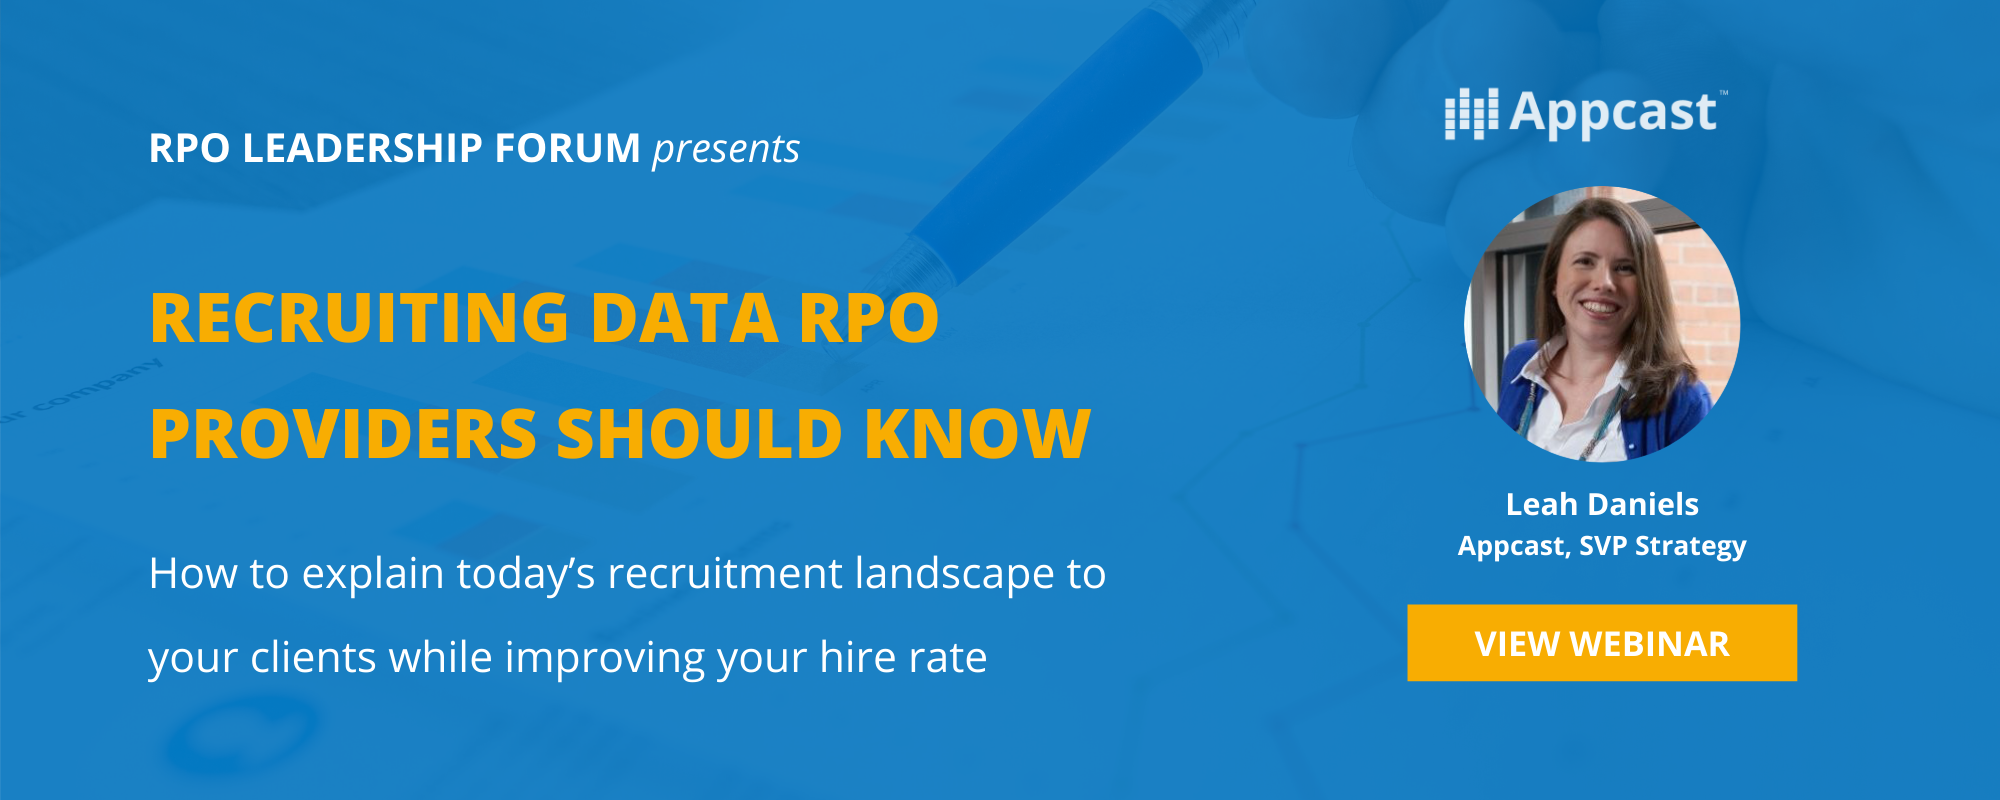 Recruiting data you should know